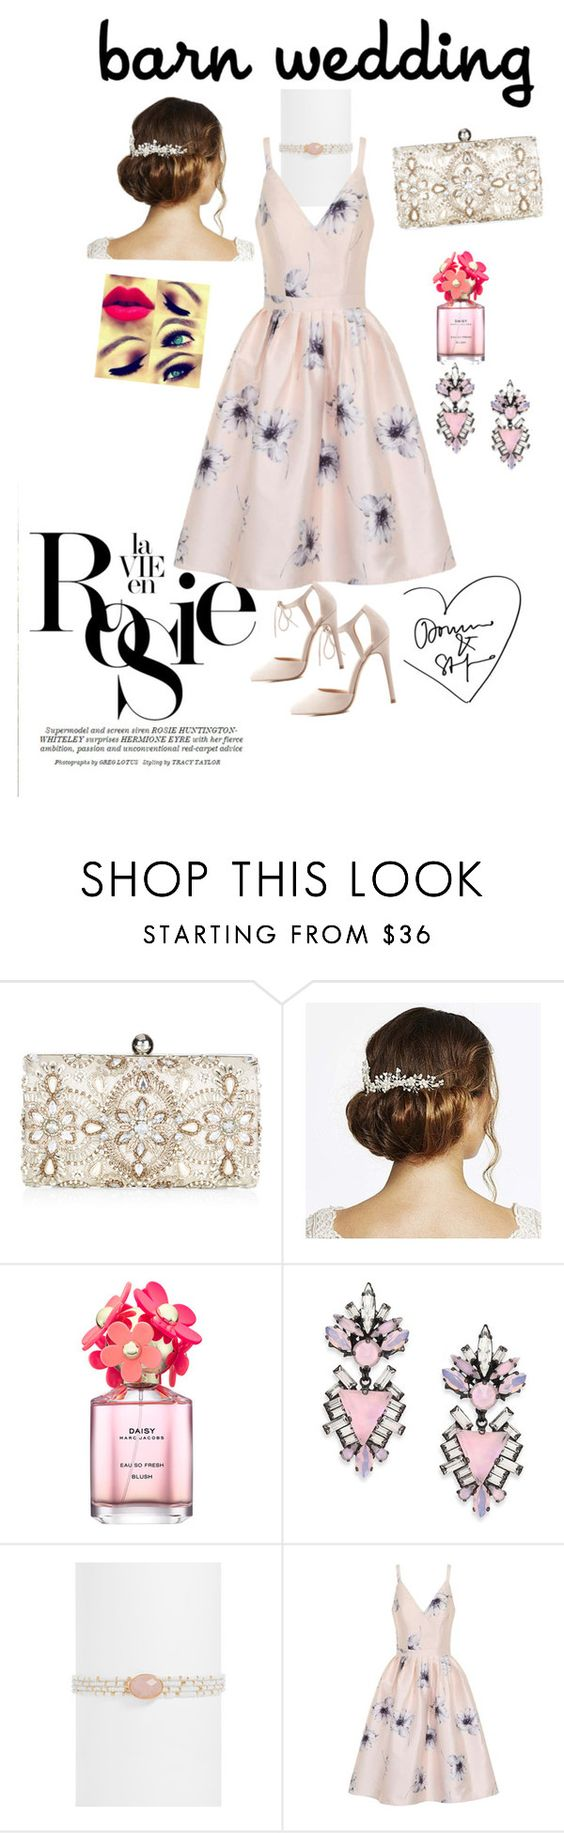 """""""Untitled #34"""" by chiosee ❤ liked on Polyvore featuring Whiteley, Accessorize, Jon Richard, Marc Jacobs, Erickson Beamon, BaubleBar, Chi Chi, Charlotte Russe, bestdressedguest and barnwedding"""